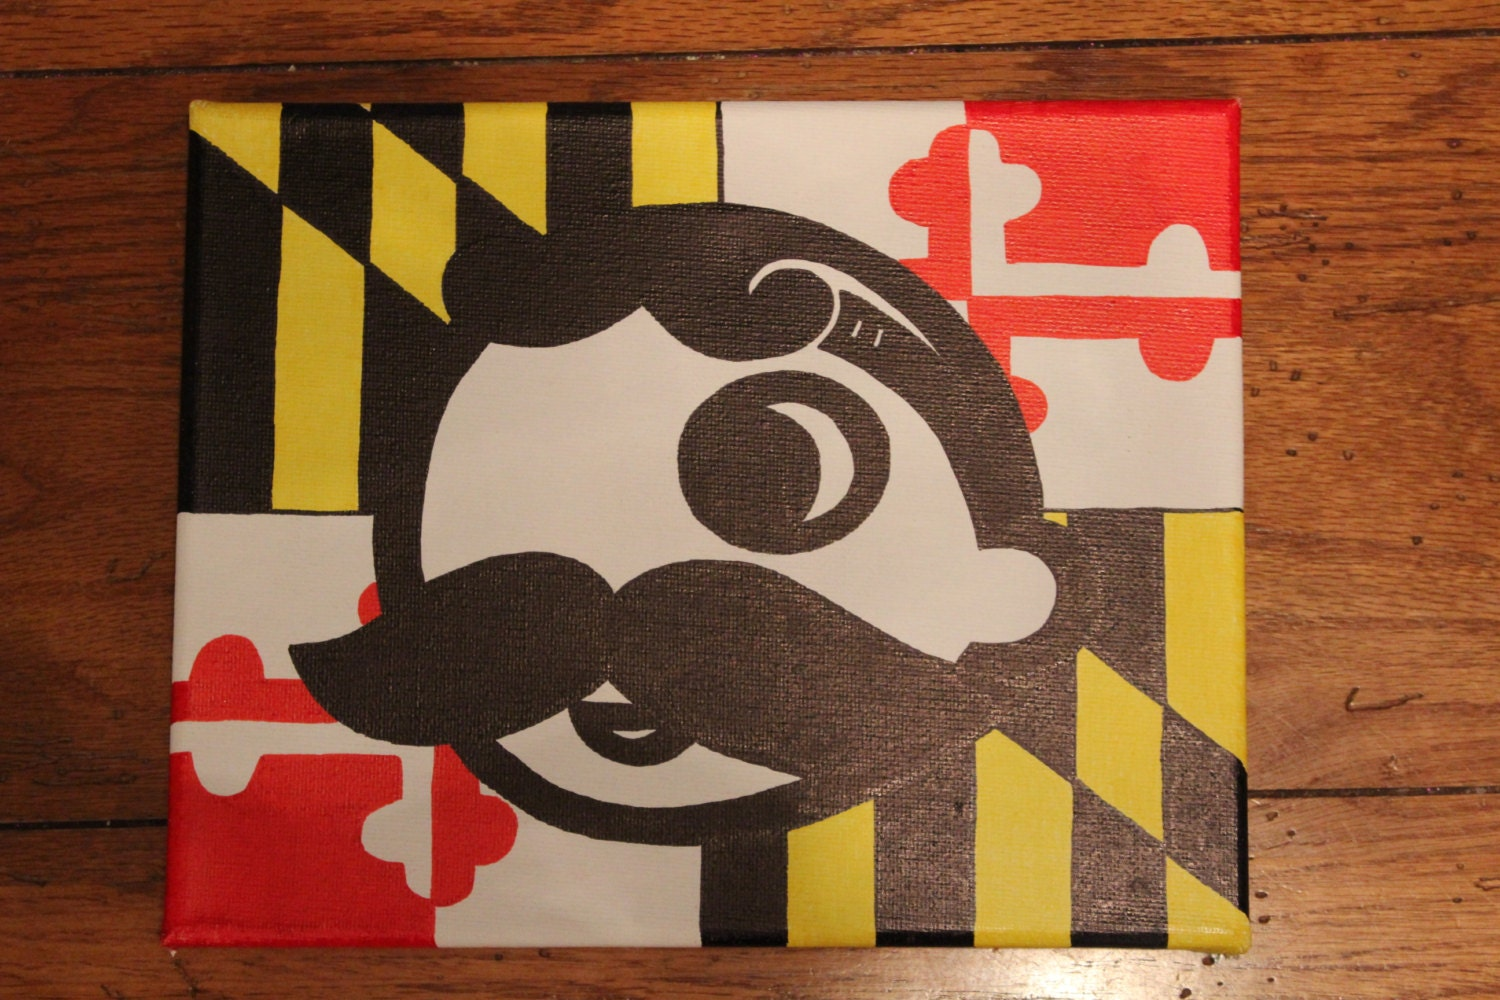 Brand-new Natty Boh with a Maryland flag background VY09